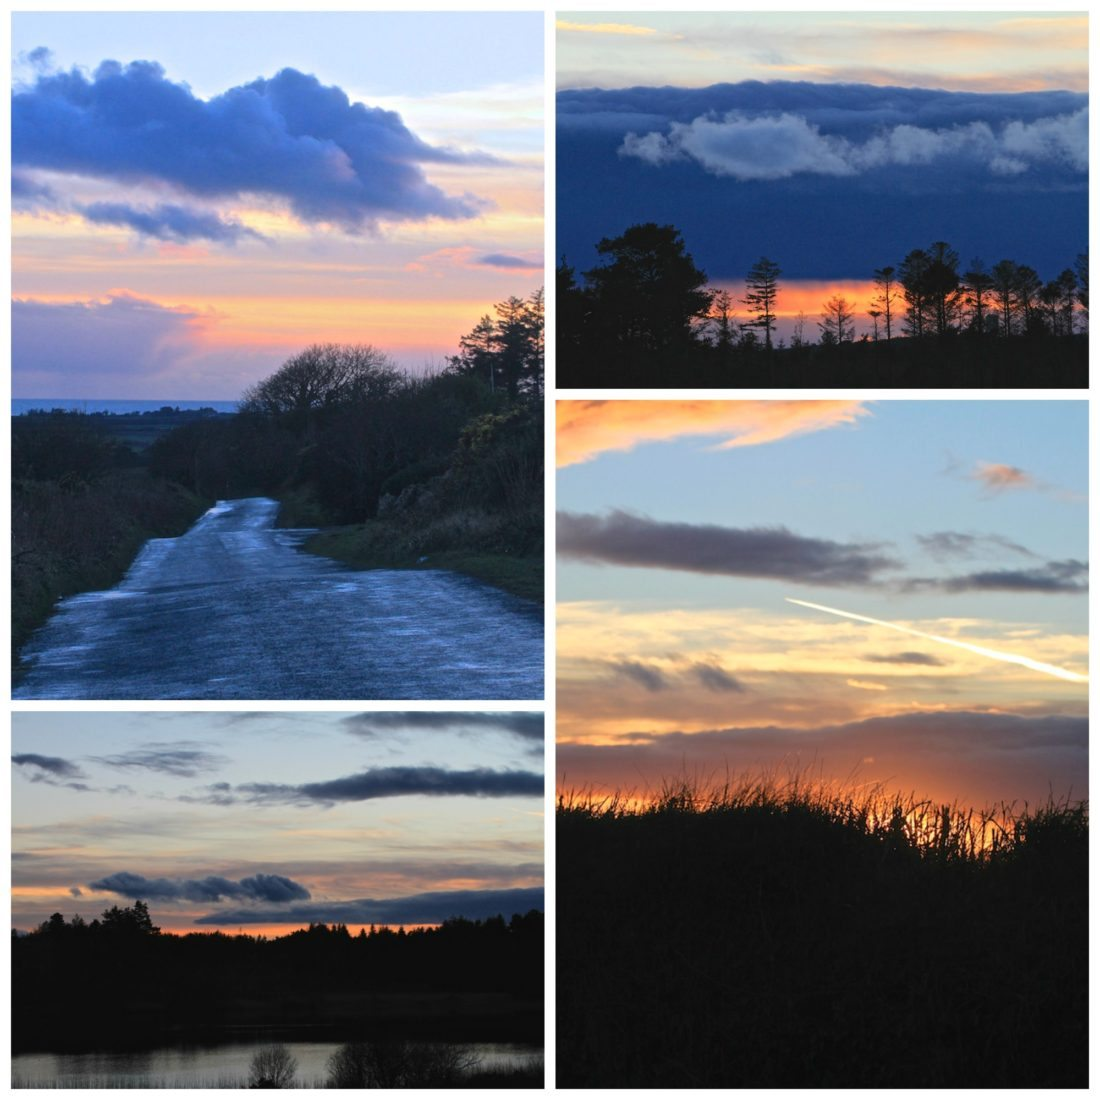 photographing-evening-skies-collage